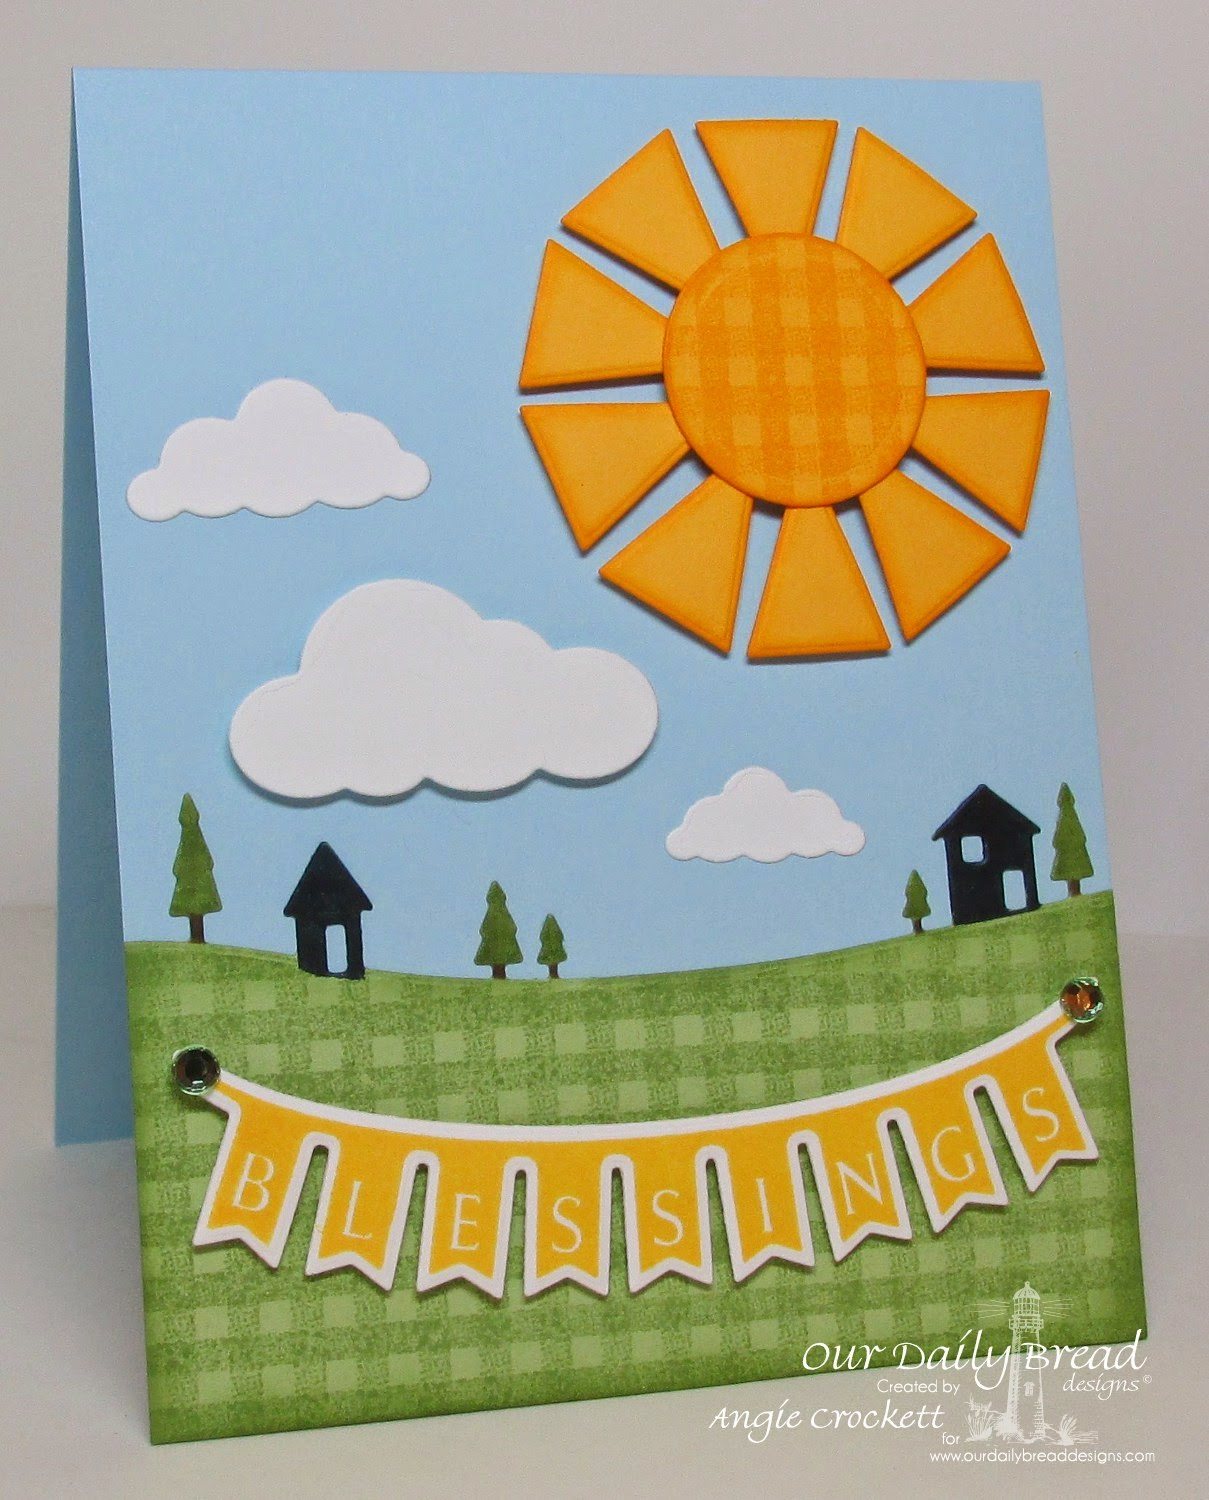 ODBD Gingham Background, ODBD Pennants Die Set, ODBD Pennants Swag Die, ODBD Pennants Swag 1 Stamp Set, Card Designer Angie Crockett